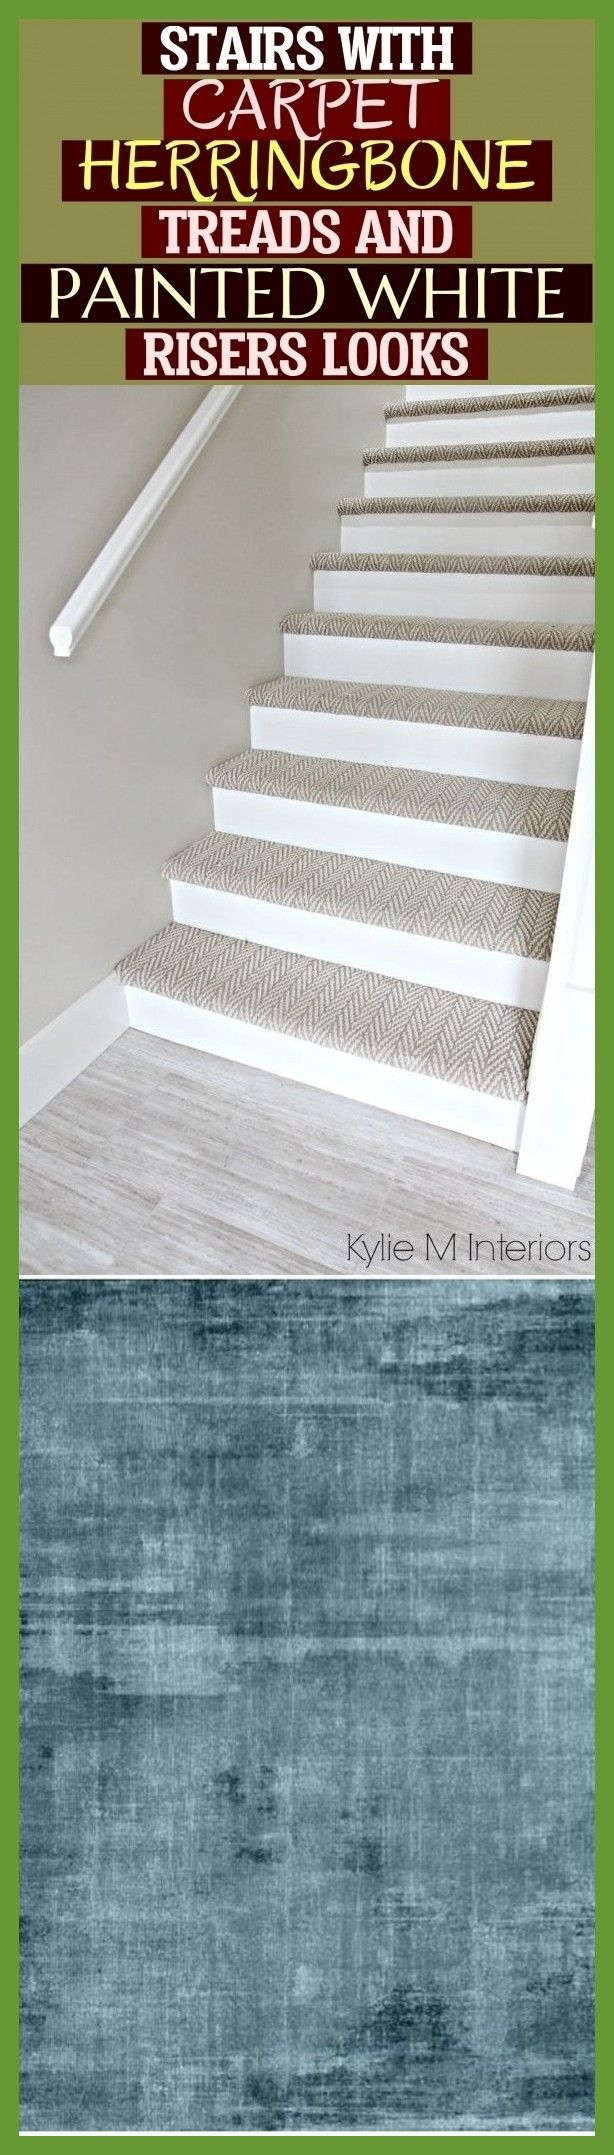 Stairs With Carpet Herringbone Treads And Painted White Risers Looks | treppe mi…